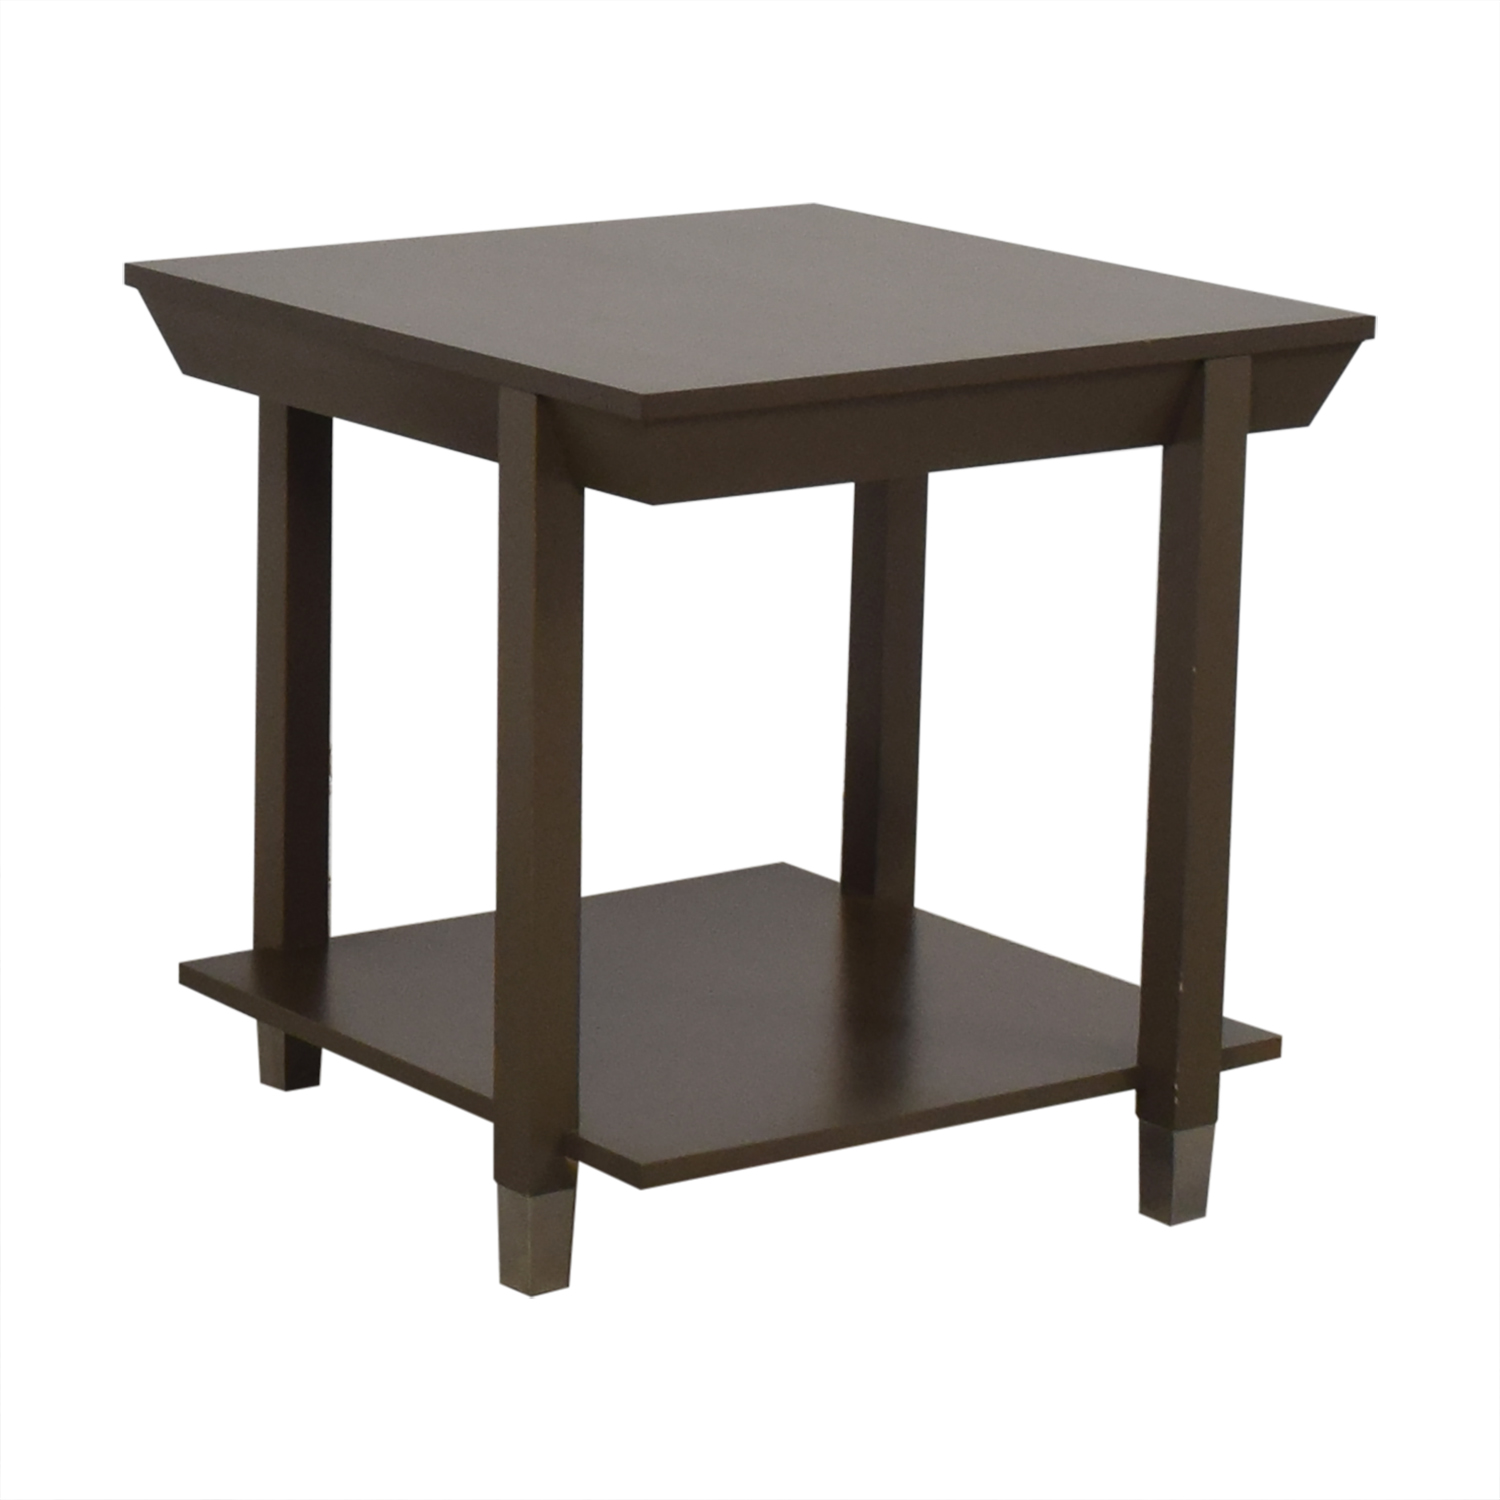 CTH Sherrill Occasional Furniture CTH Sherril Occasional Furniture Square End Table